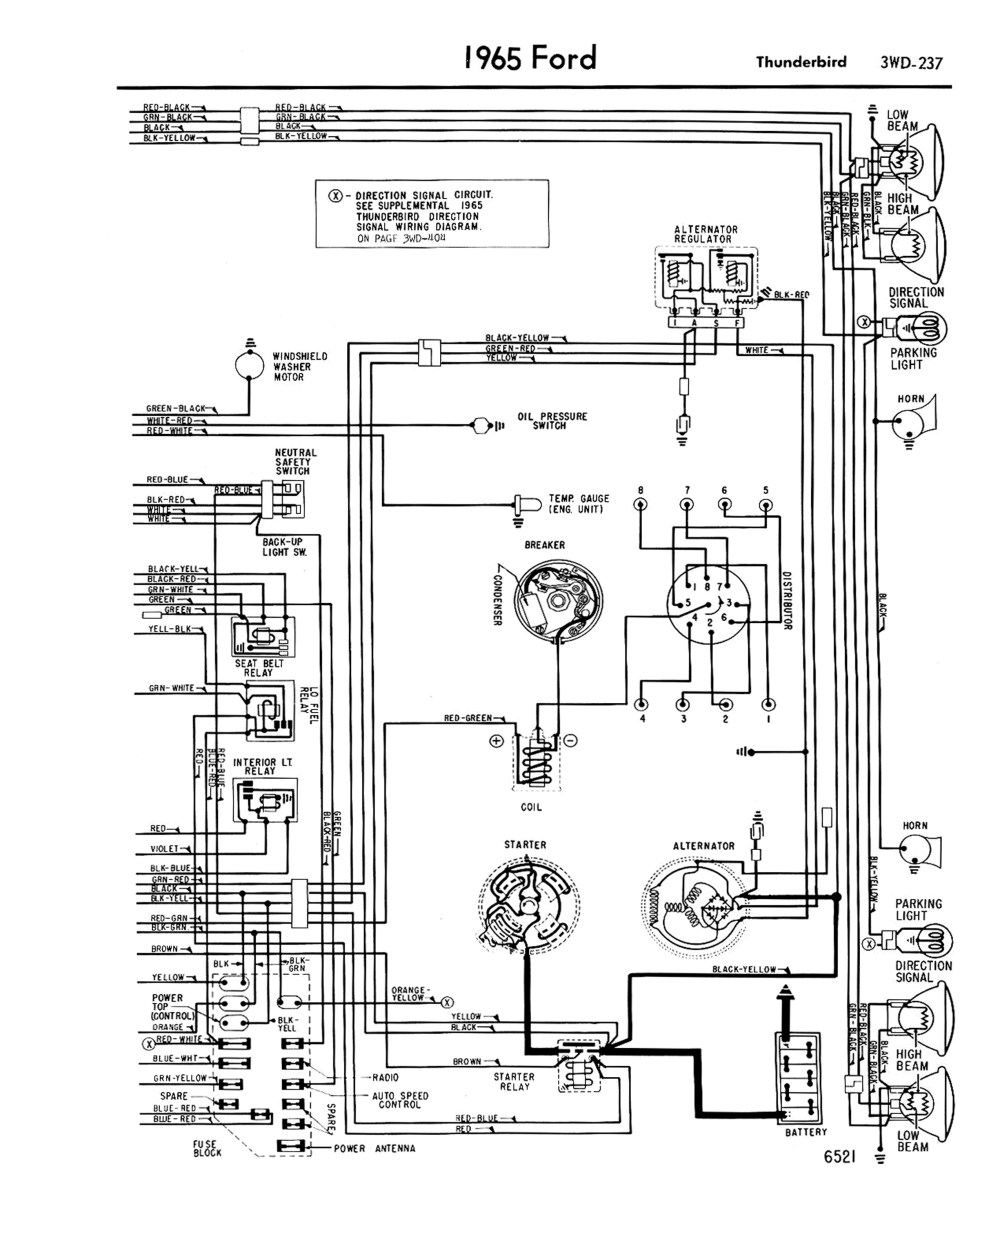 medium resolution of 1968 ford wiring diagram tail lights wiring diagrams 1965 f250 tail light socket wiring